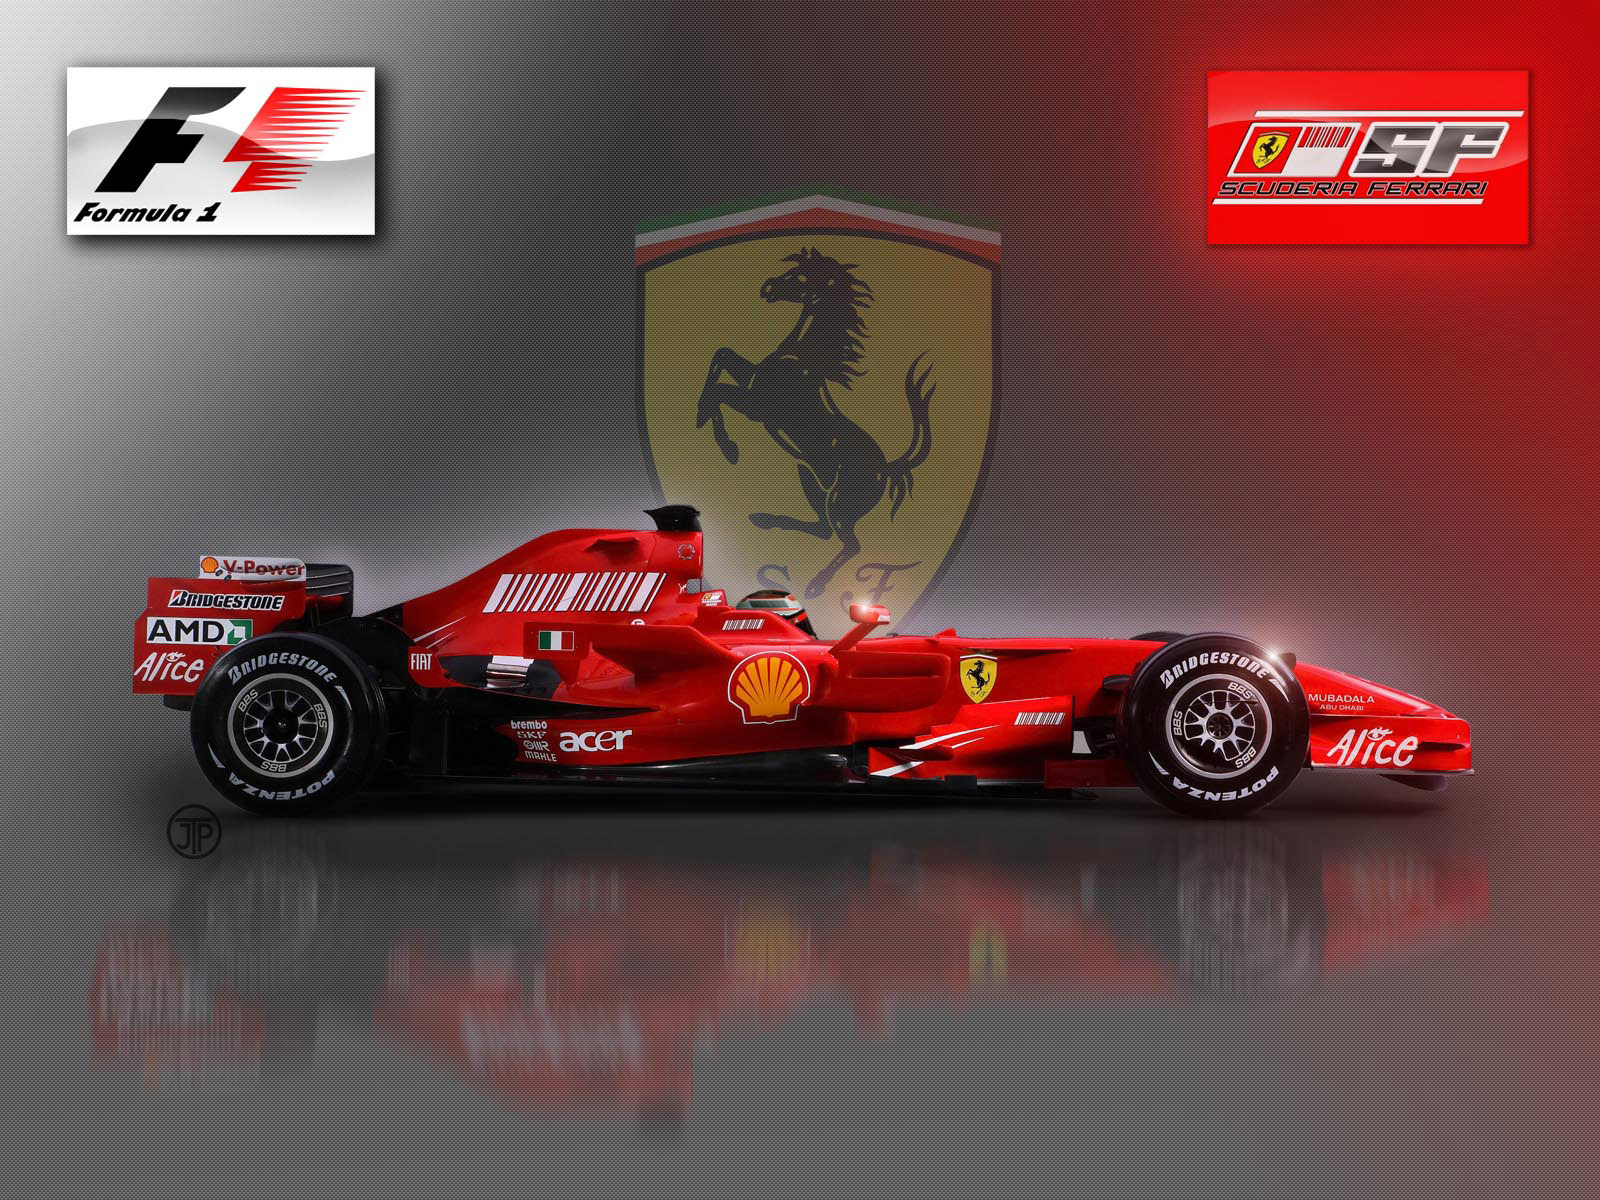 wallpaper ferrari formula 1: